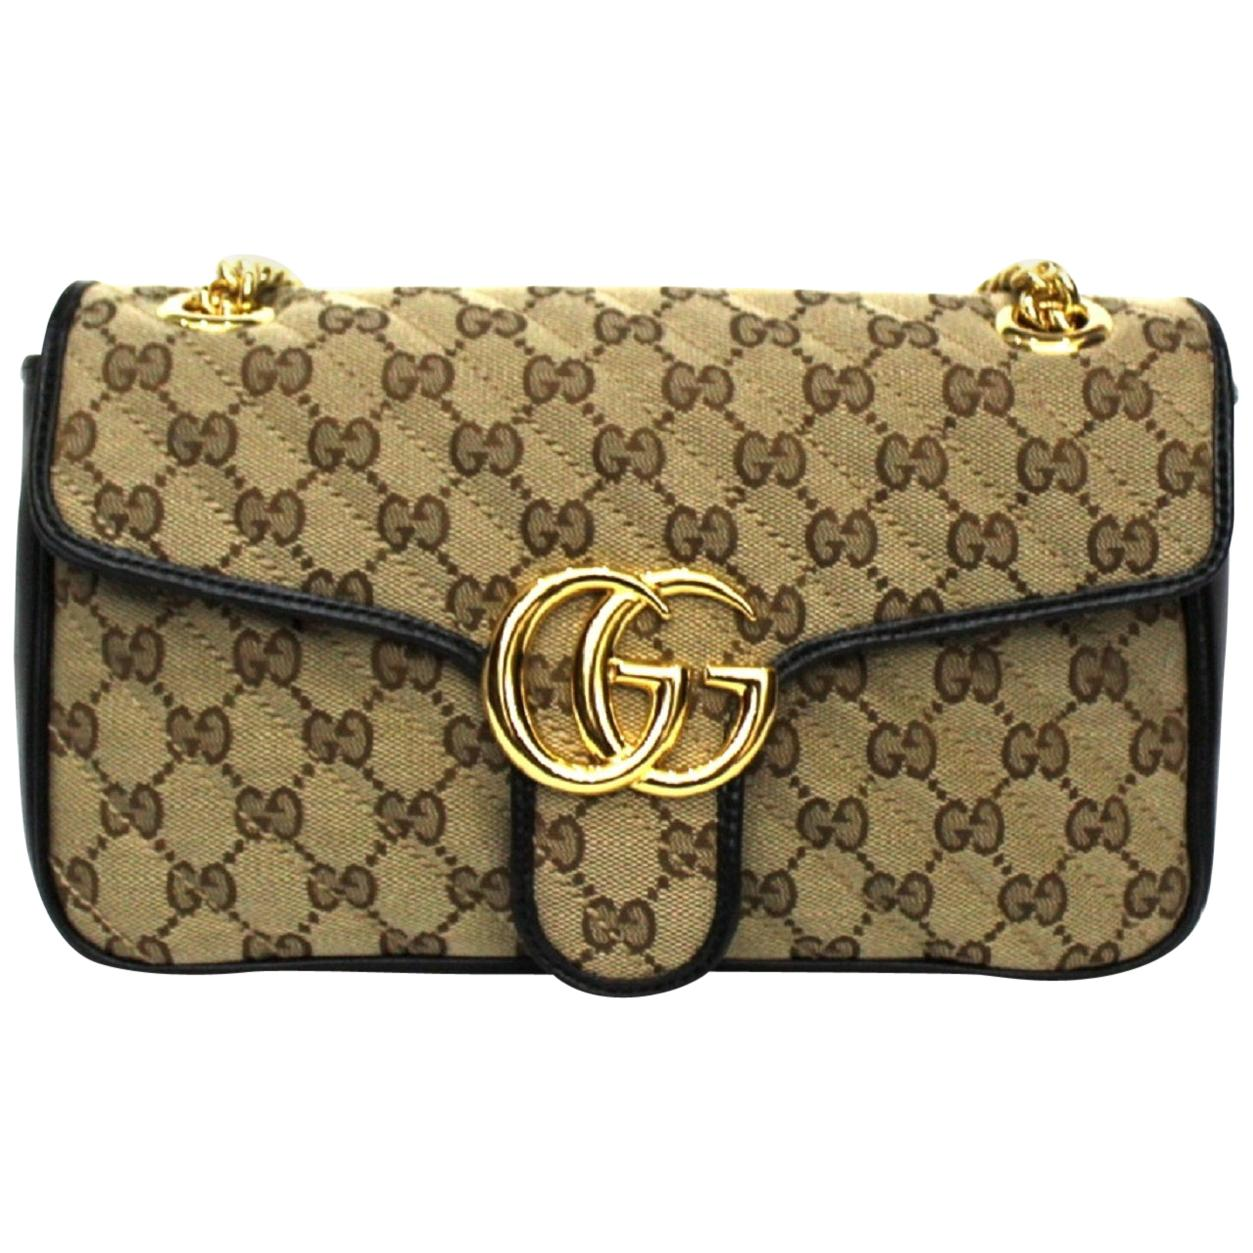 Gucci Beige and Black Canvas and Leather Marmont Bag